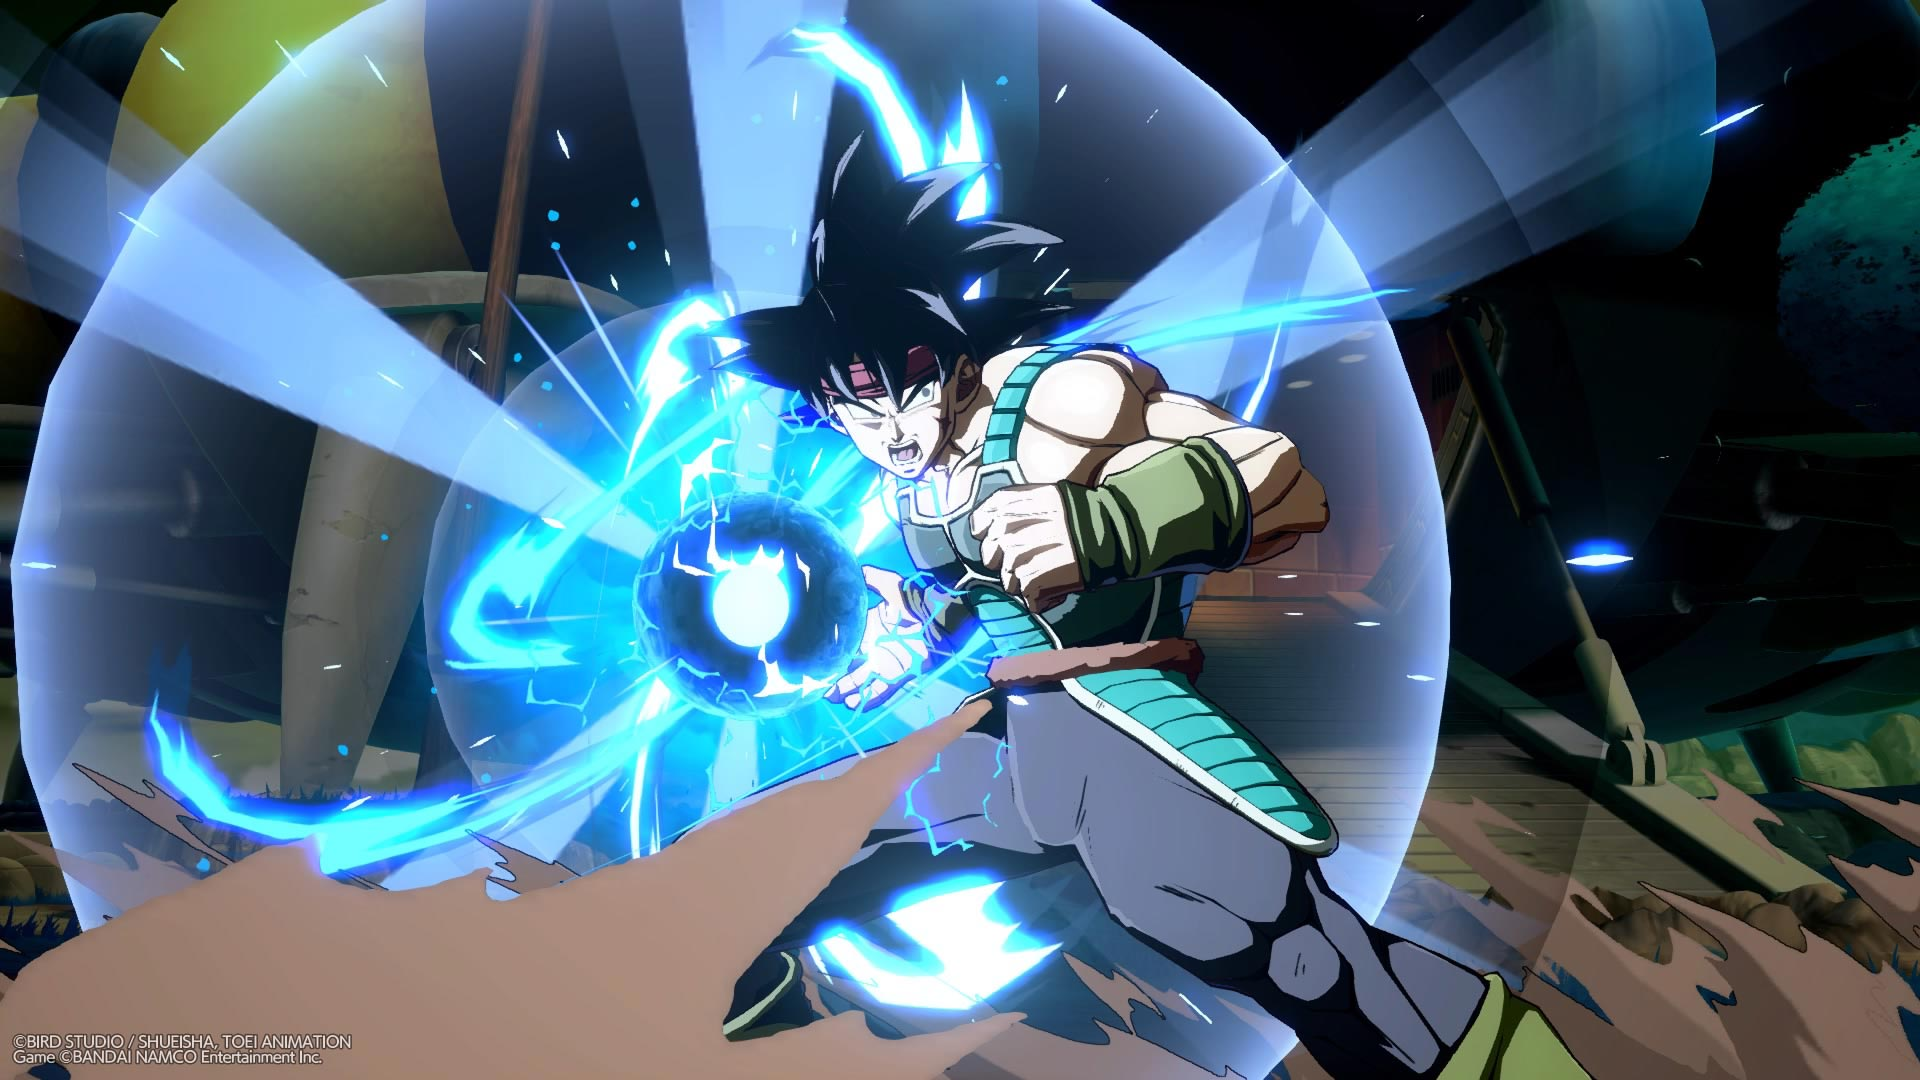 Broly and Bardock screenshots in Dragon Ball FighterZ 12 out of 12 image gallery